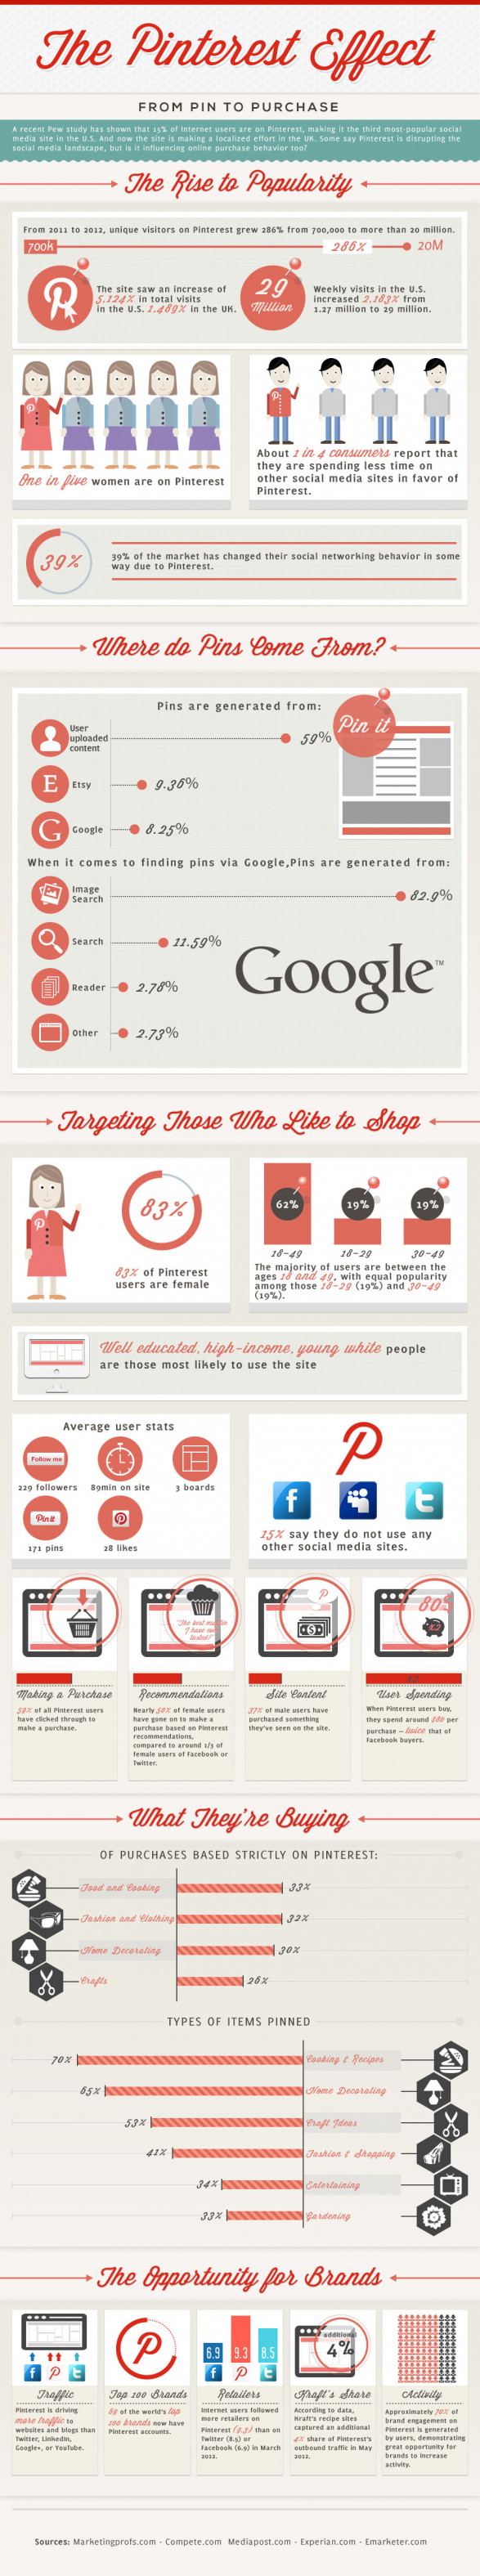 The Pinterest Effect